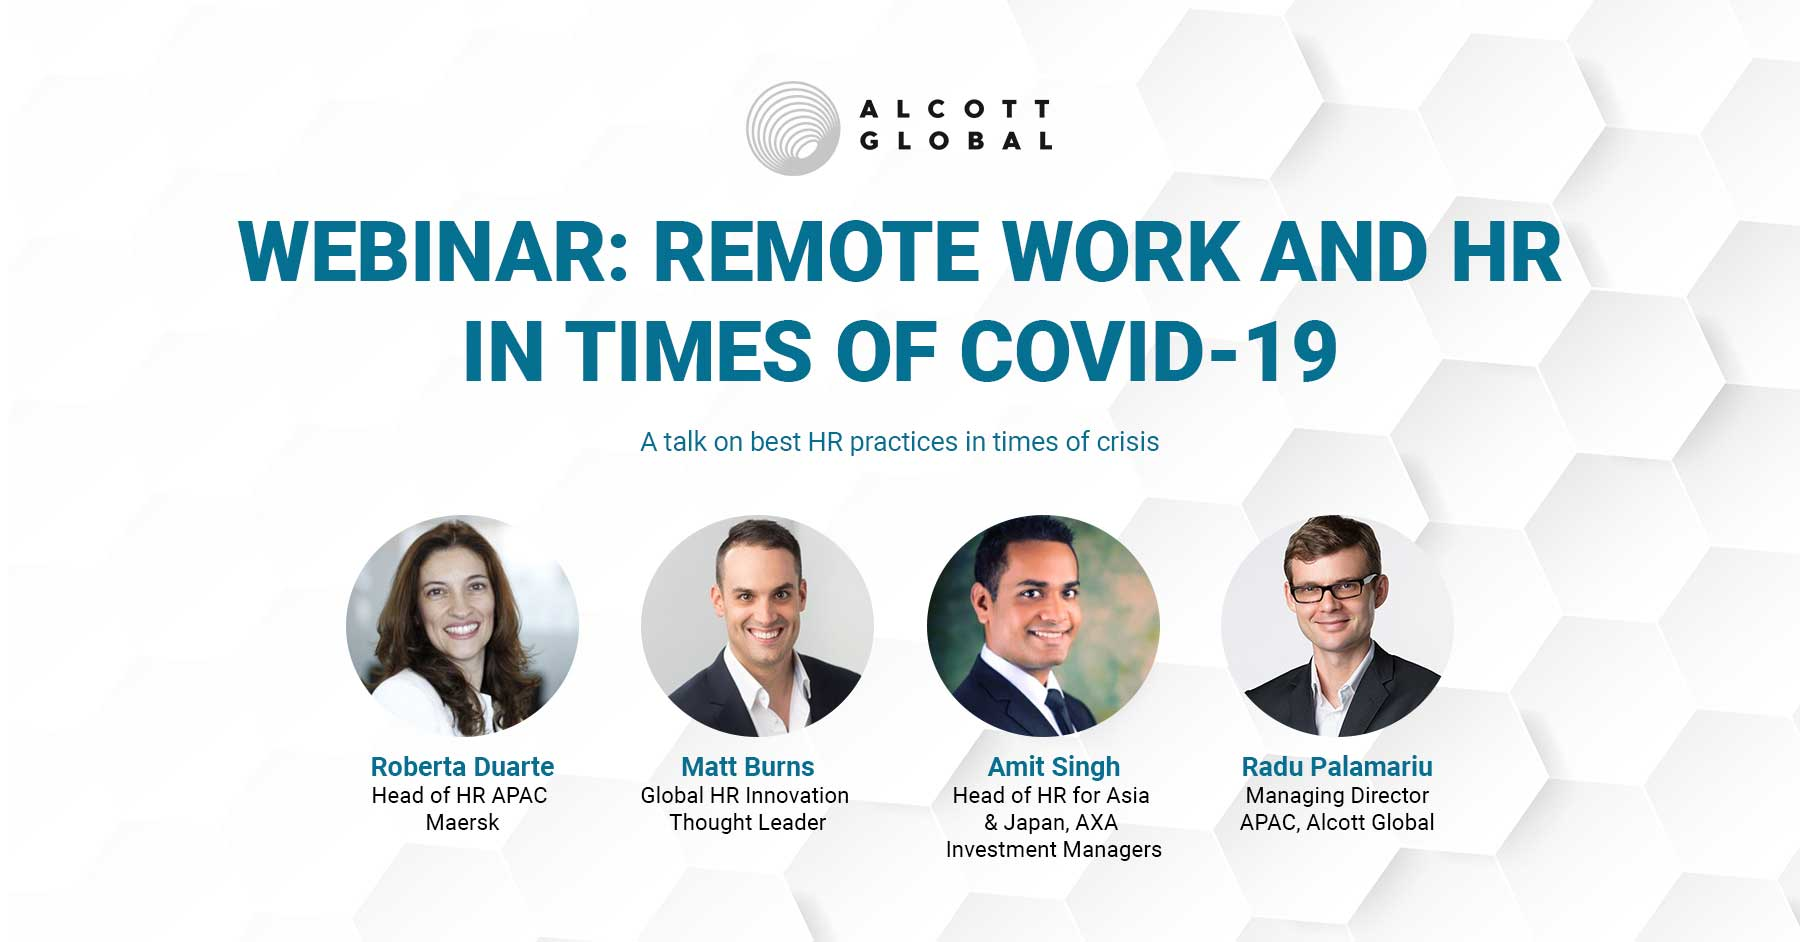 Webinar: Remote work and HR in times of COVID-19 Featured Image